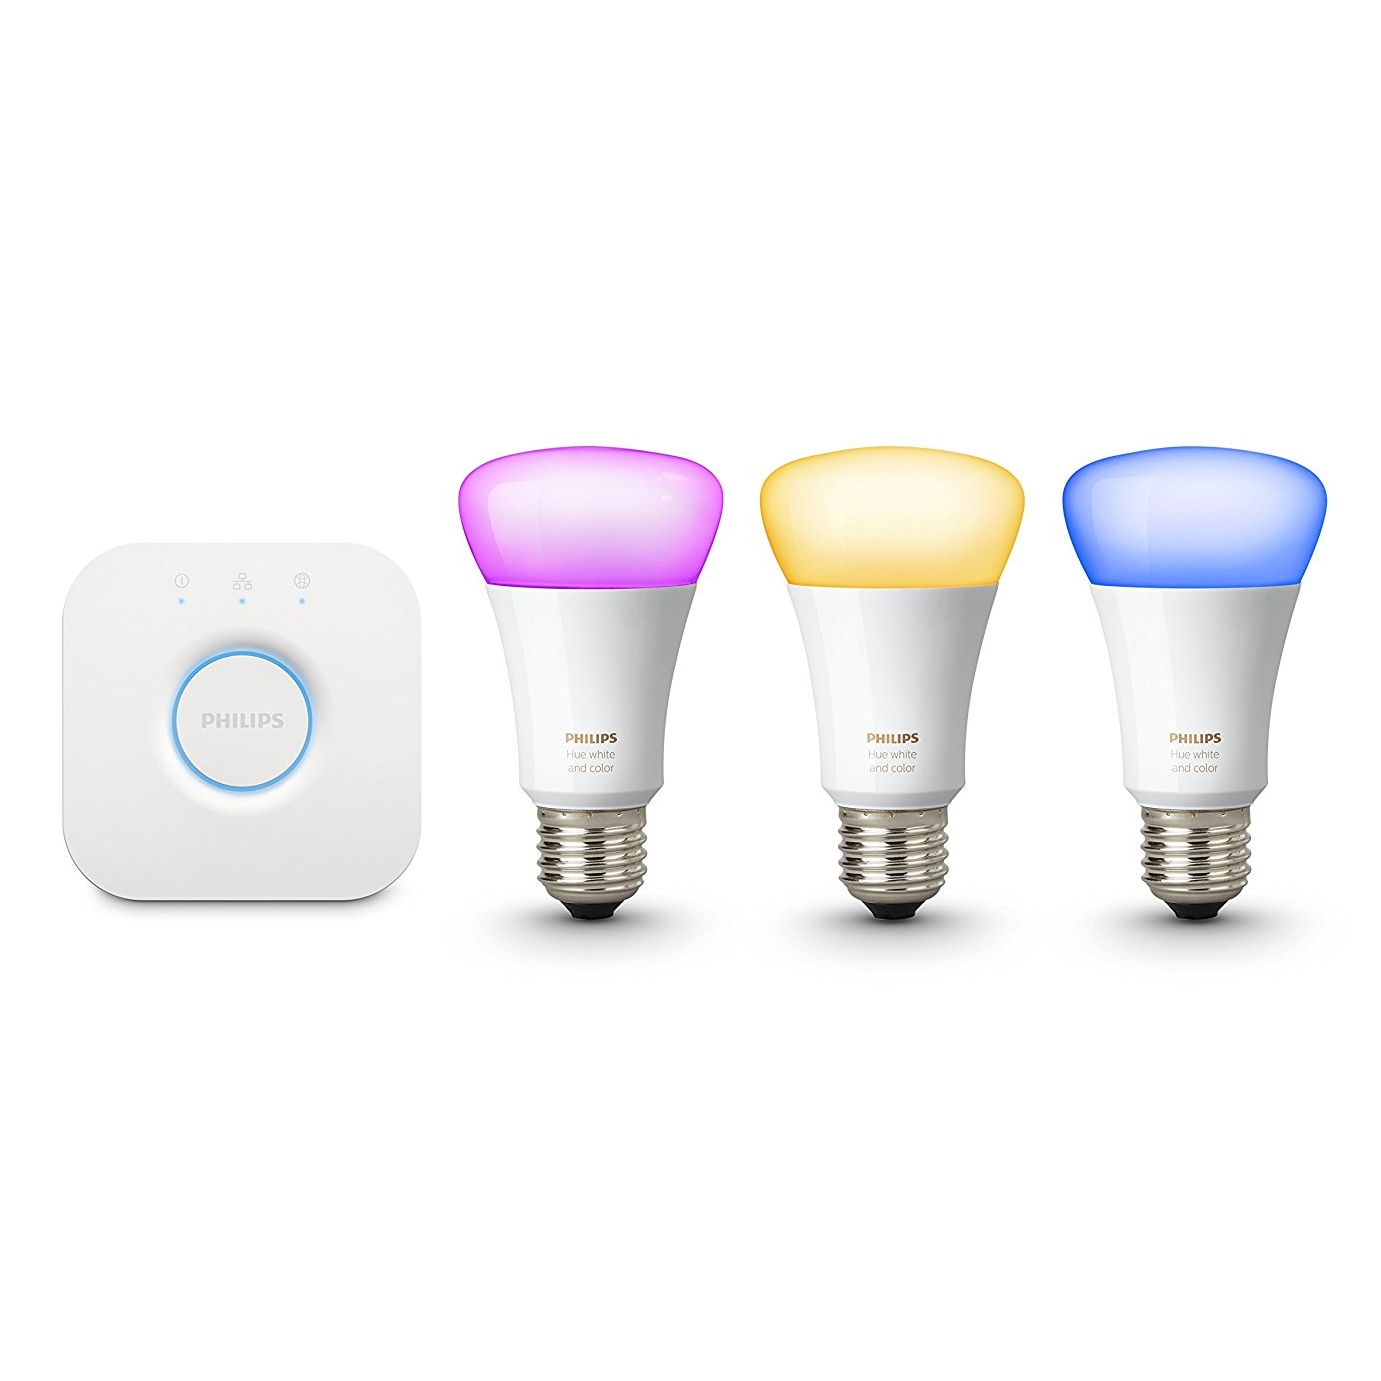 The standard starter kit comes with a bridge and three bulbs (Image Credit: Philips)